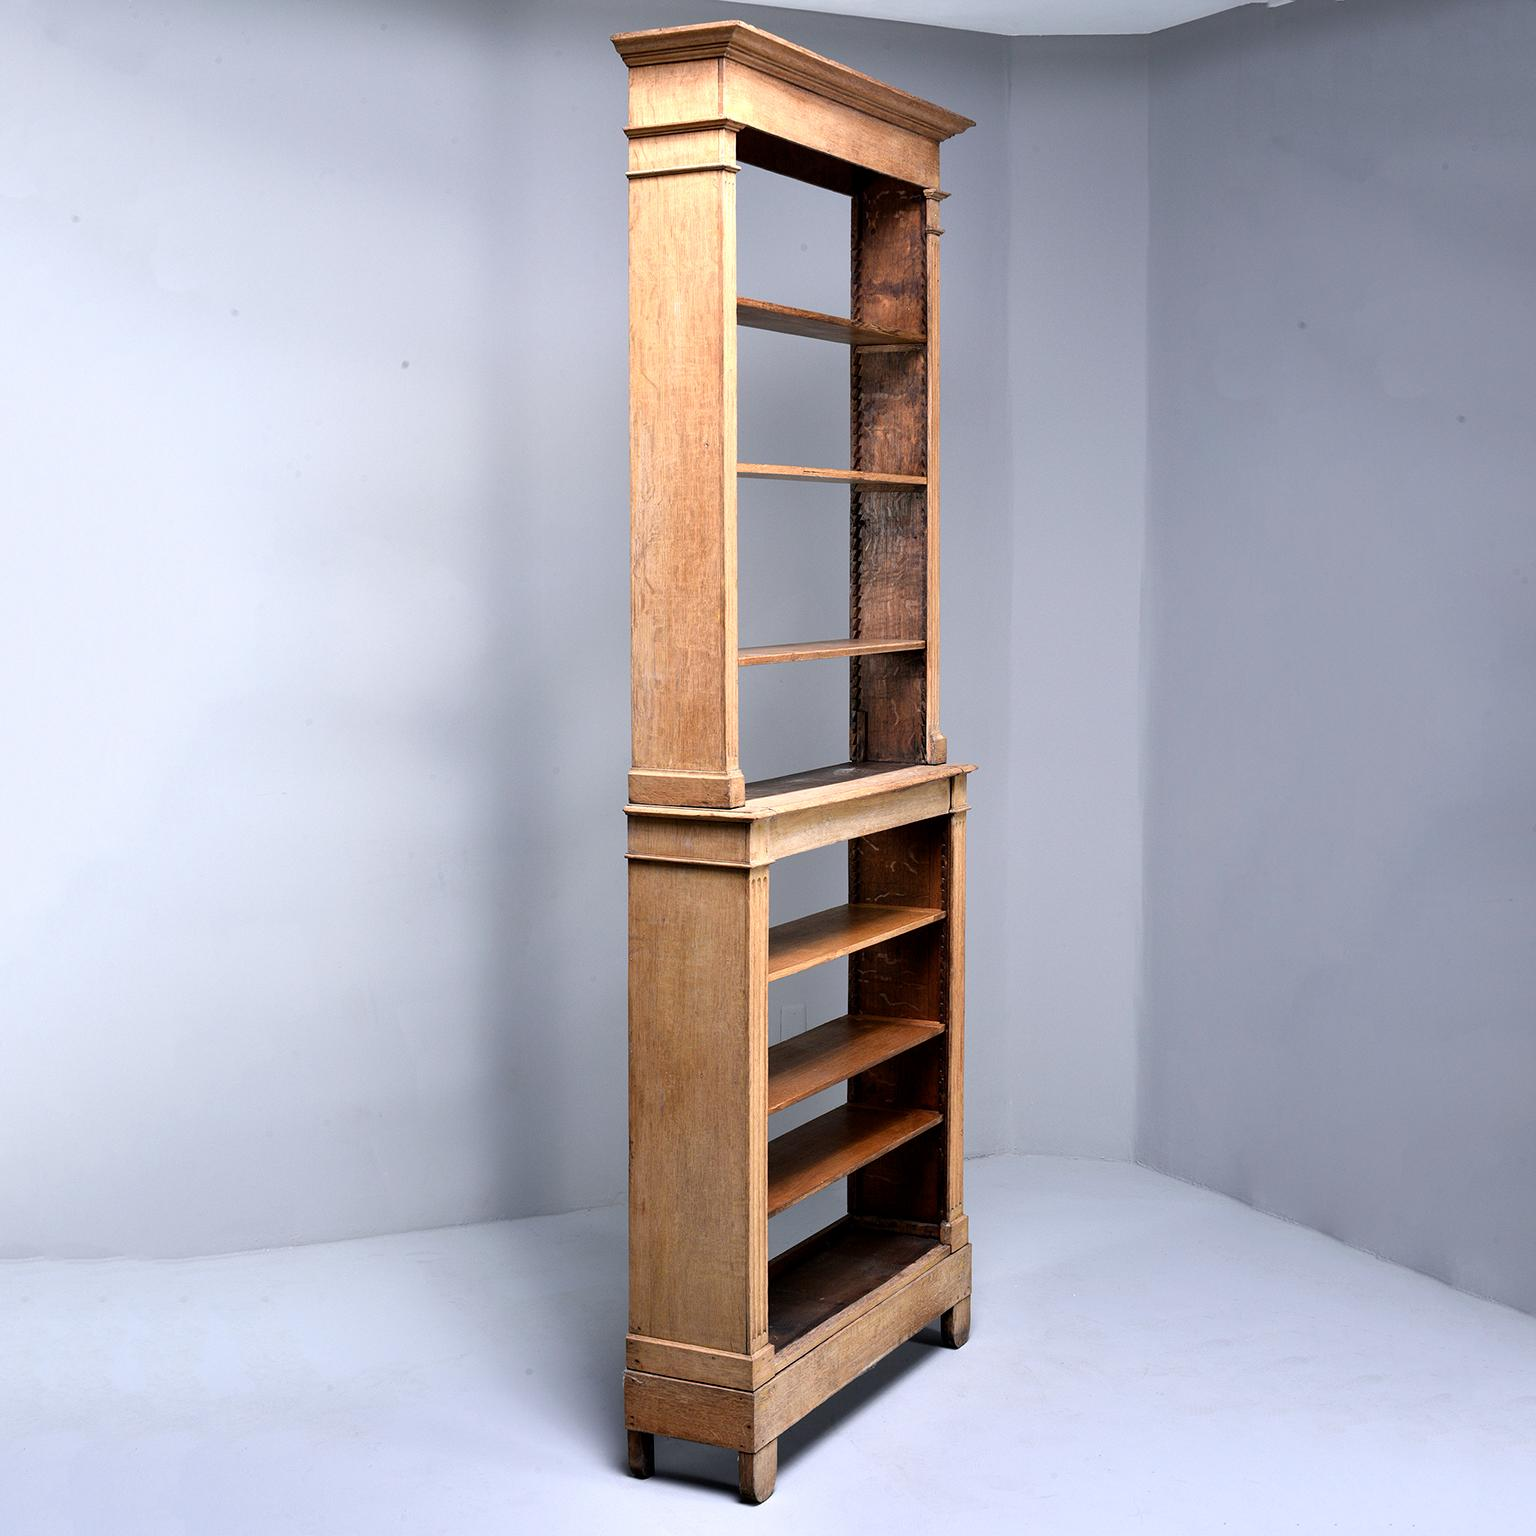 Tall French Bleached Oak Bookcase Or Étagère With Adjustable Shelves